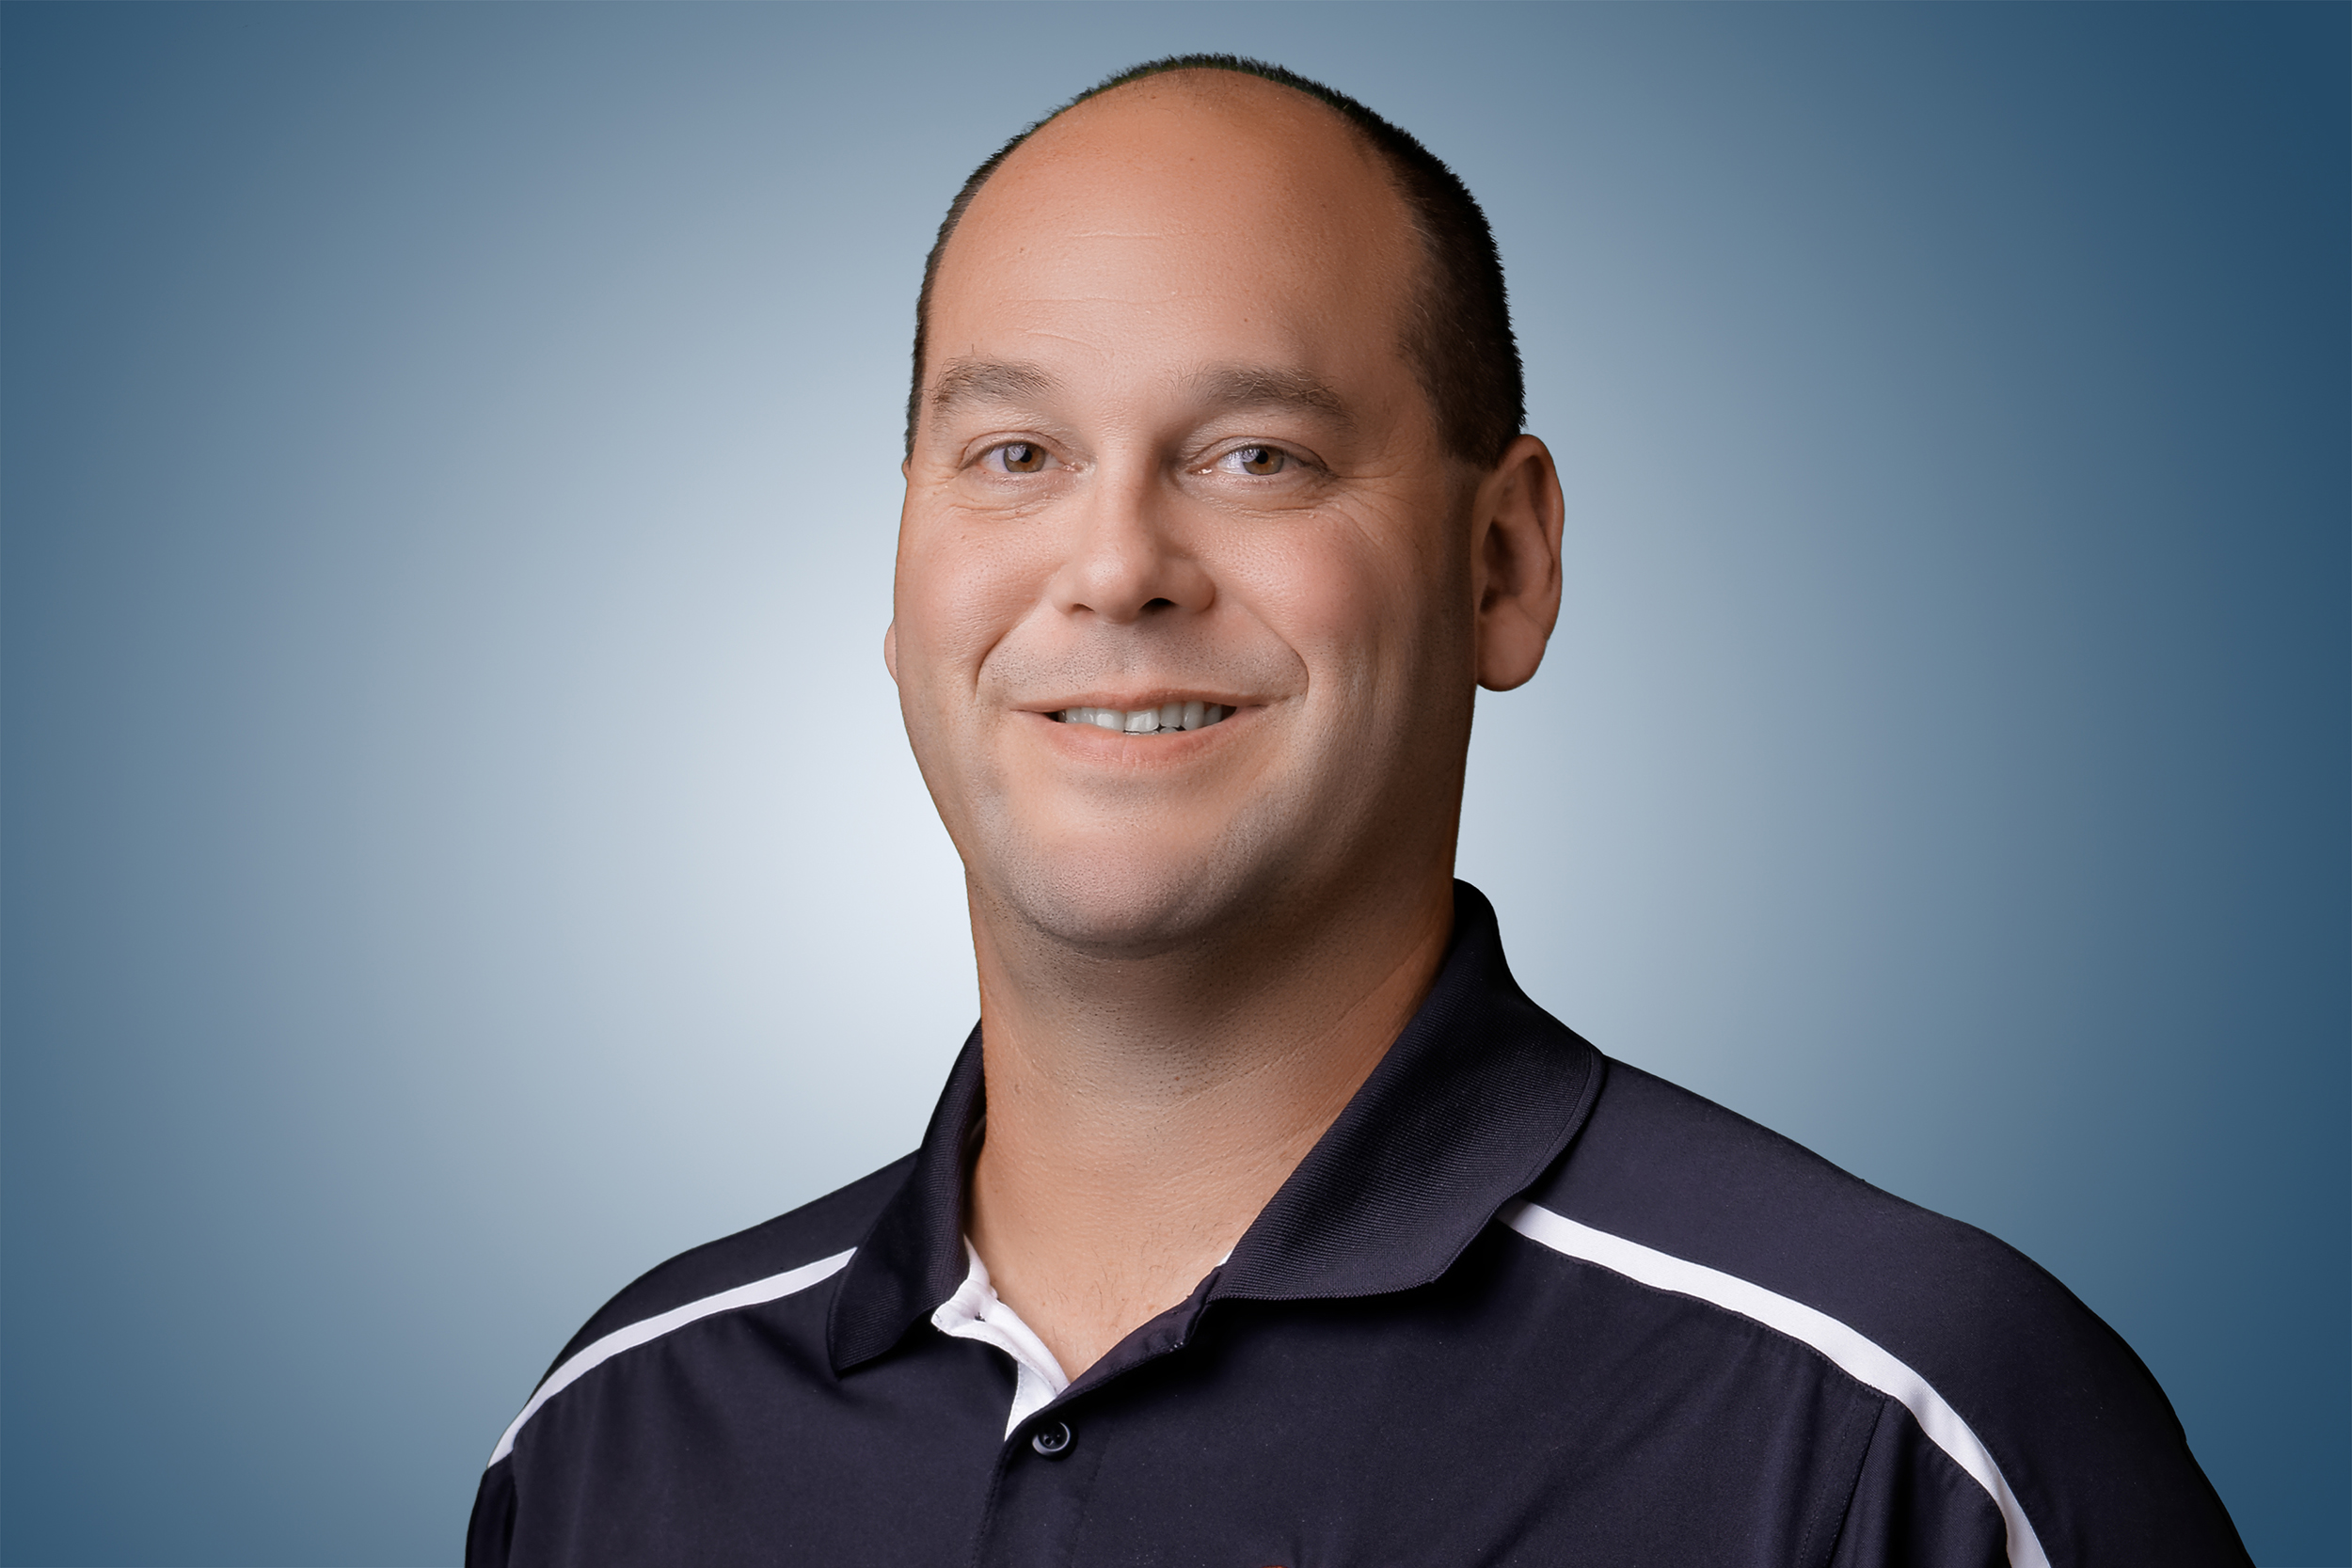 Experienced automotive aftermarket professional Cary Redman has been appointed vice president of Edelbrock brand sales.